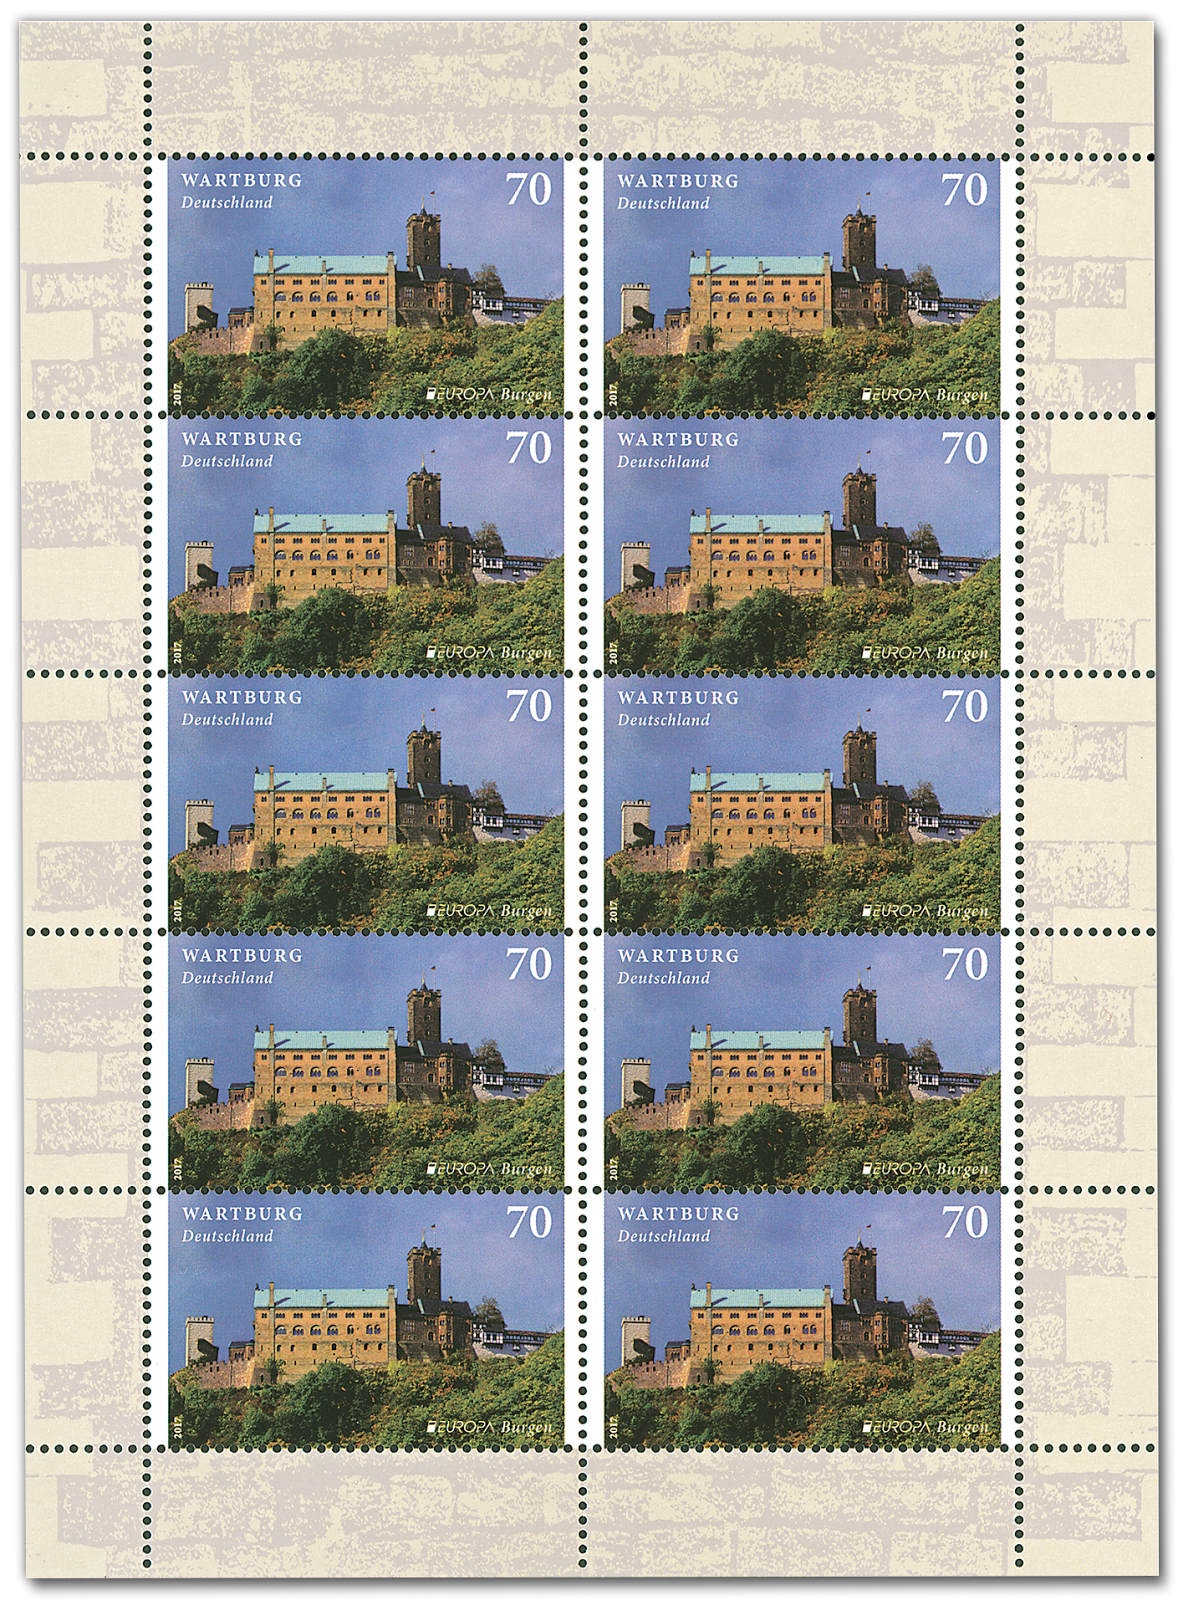 This Stamp Is Also Issued With Another German In A Booklet Of 20 Self Adhesive Stamps 10 Europa